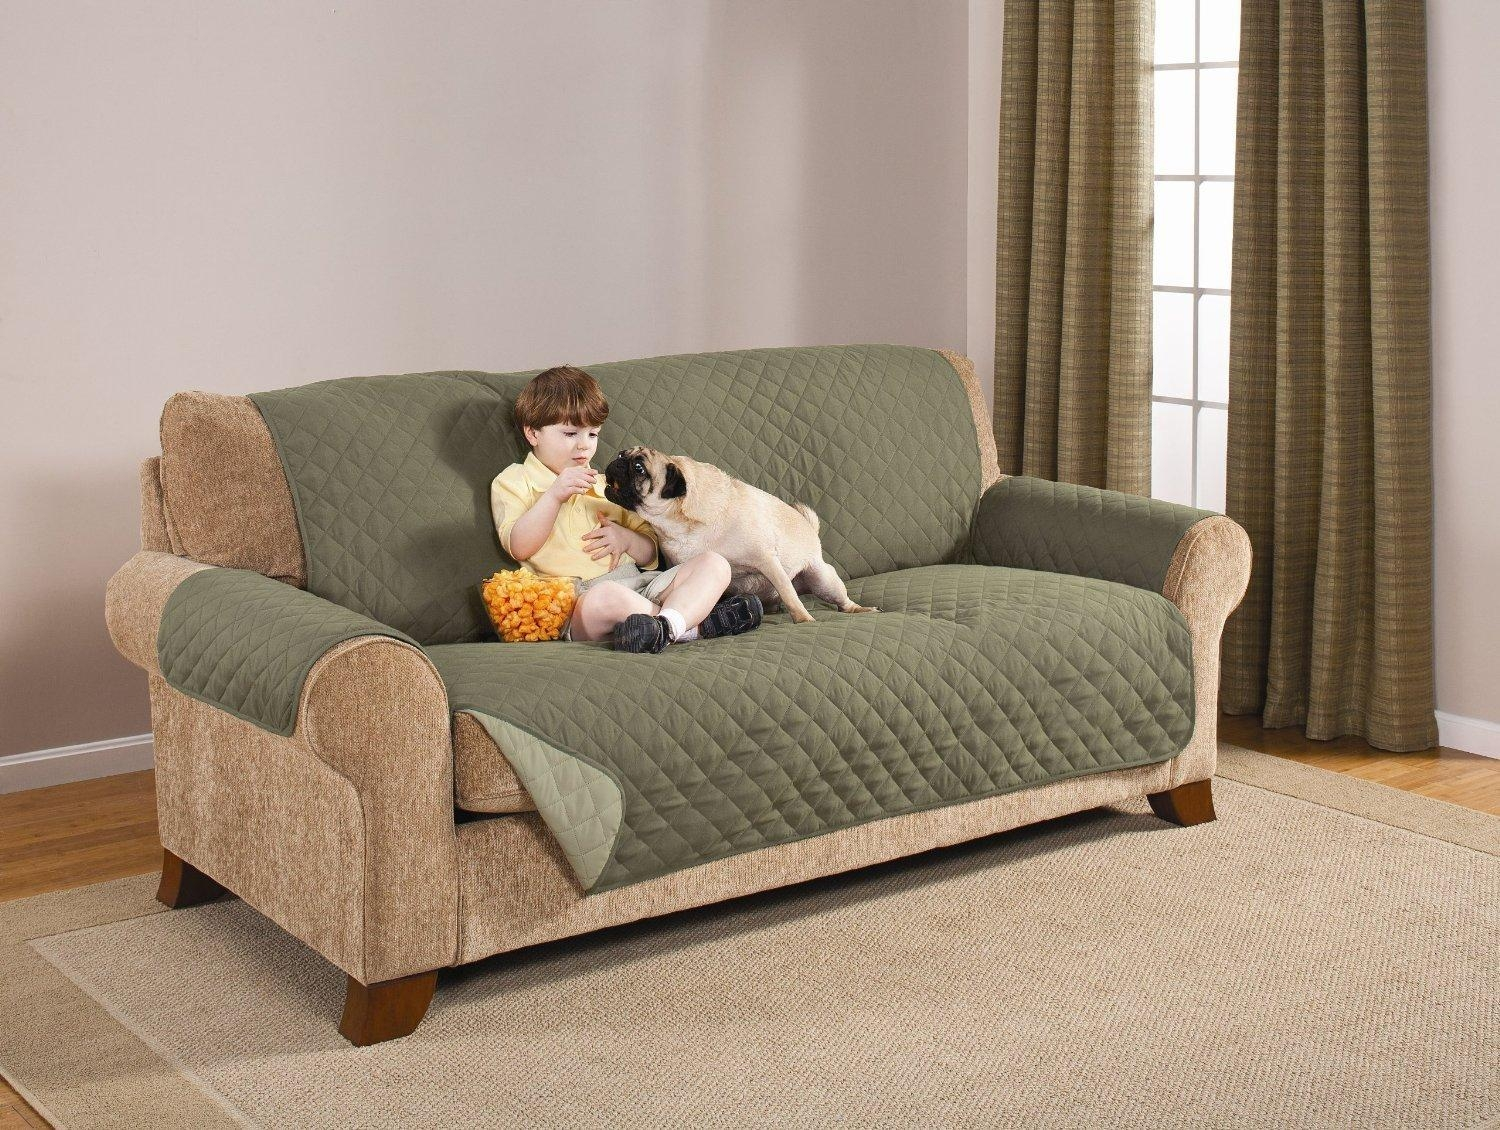 Sofas Center : Excellent Extra Wide Sectional Sofa On Types Of Inside Wide Sectional Sofa (Image 19 of 20)